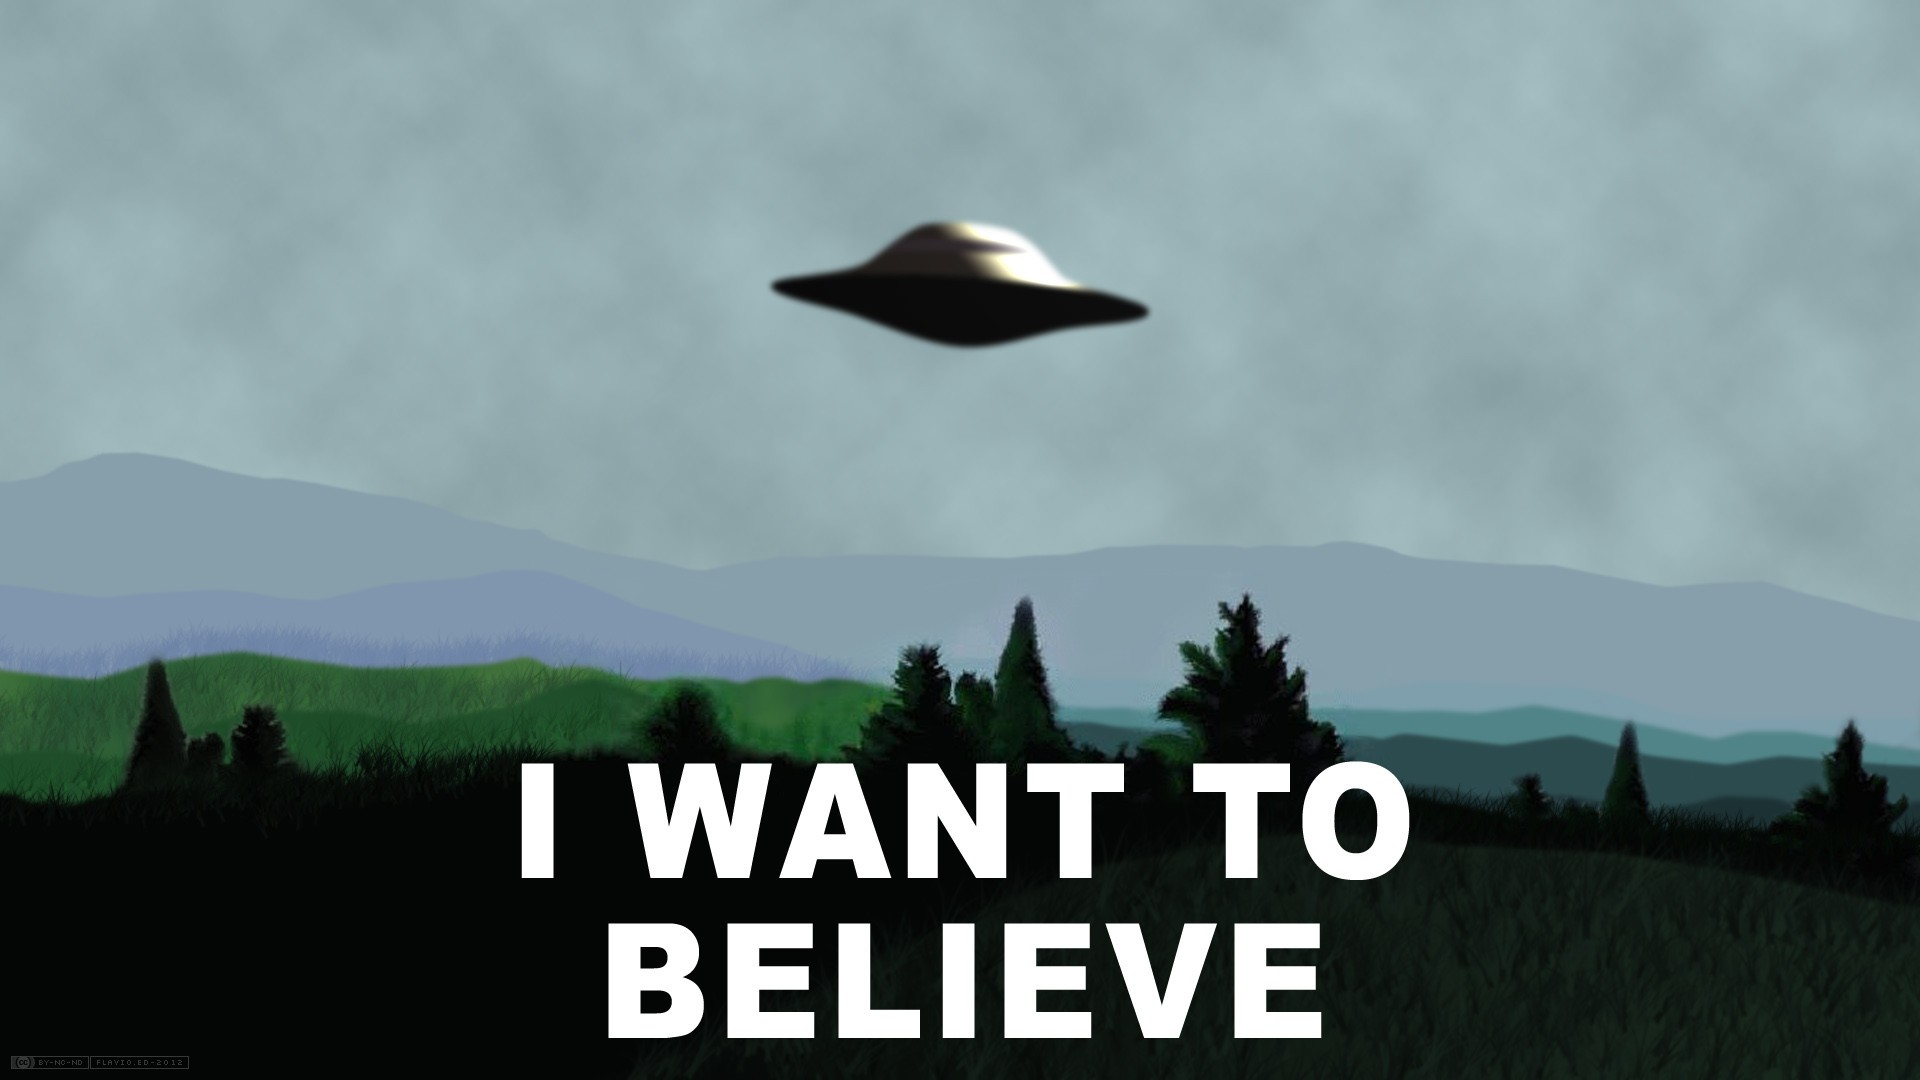 Ufo I want to believe